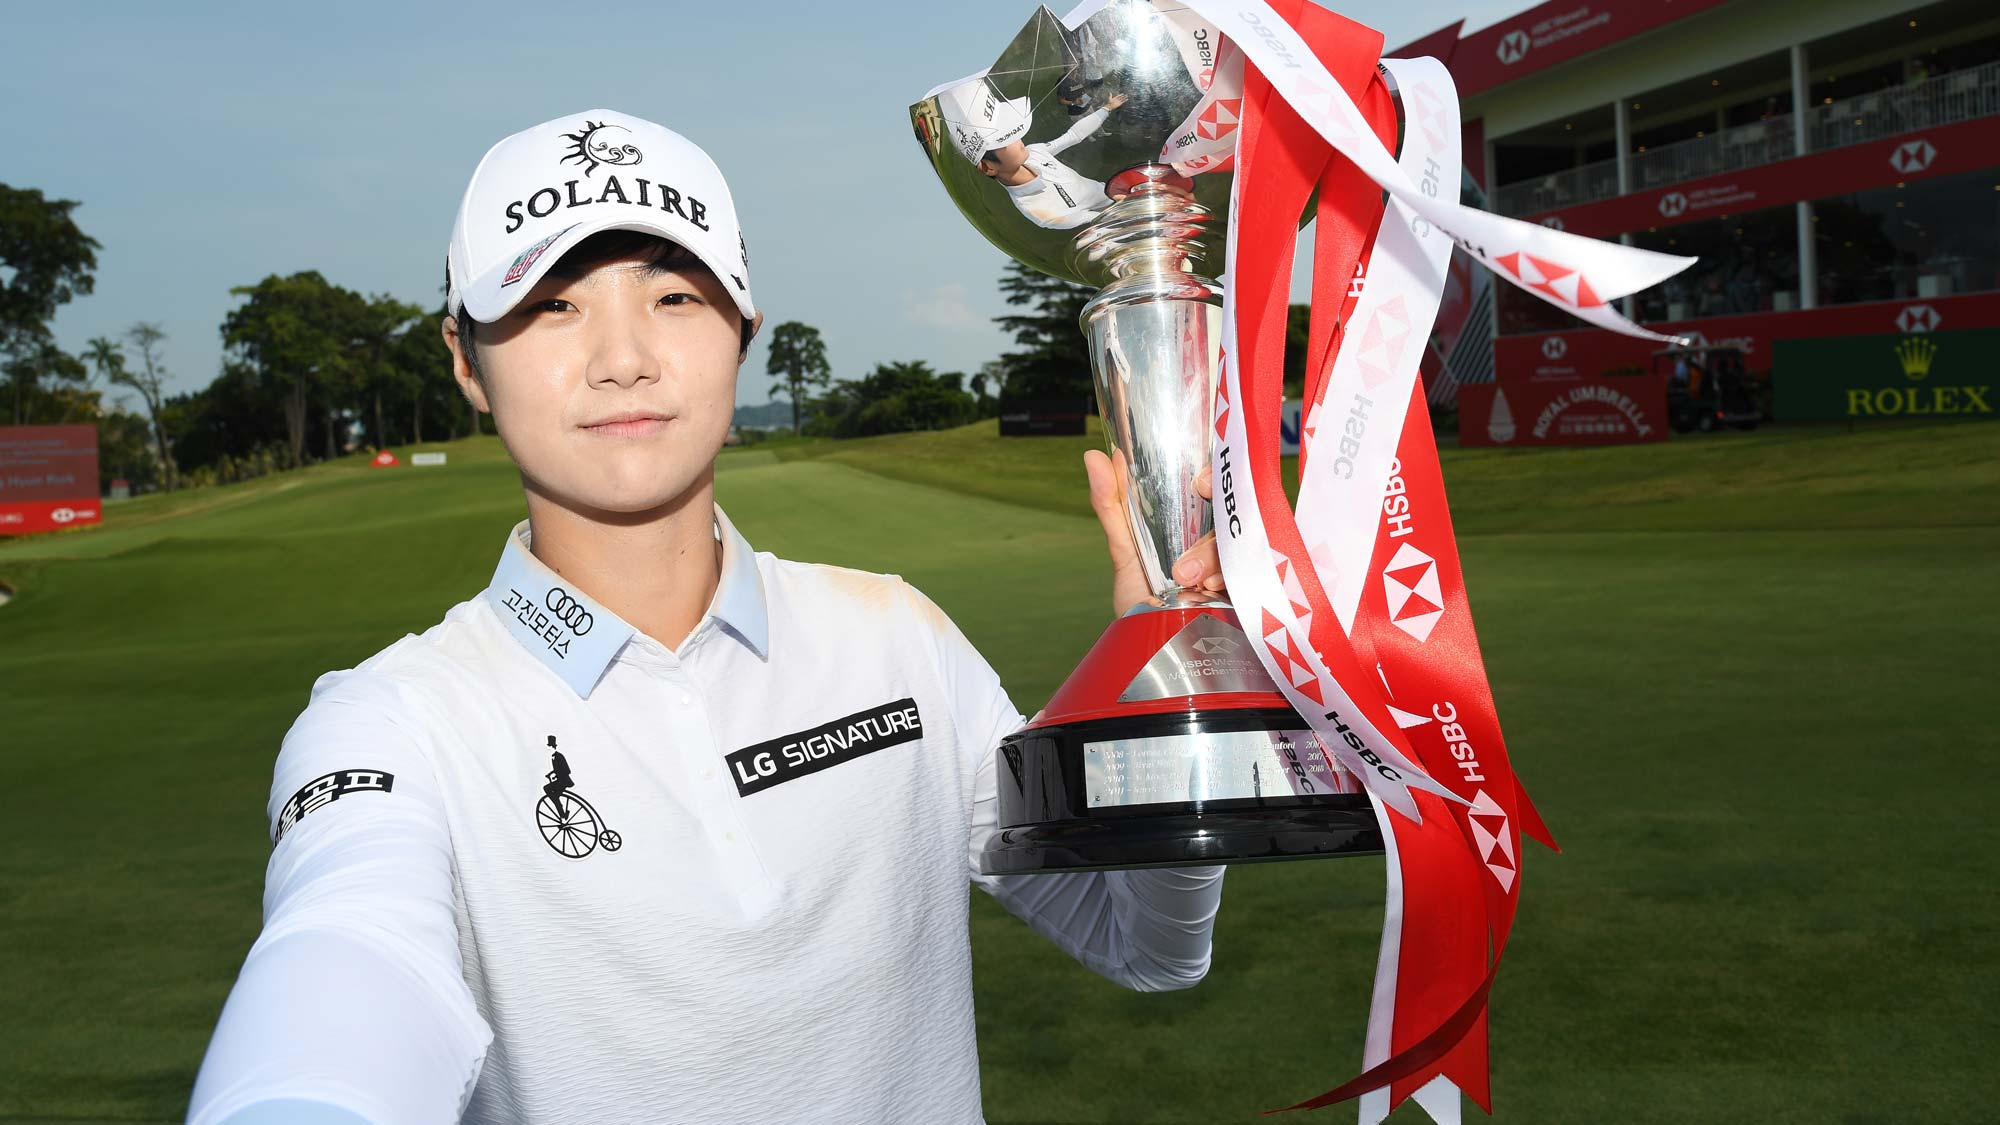 Sung Hyun Park has her #BagsPacked for the 2020 Diamond Resorts Tournament of Champions after her victory at the 2019 HSBC Women's World Championship